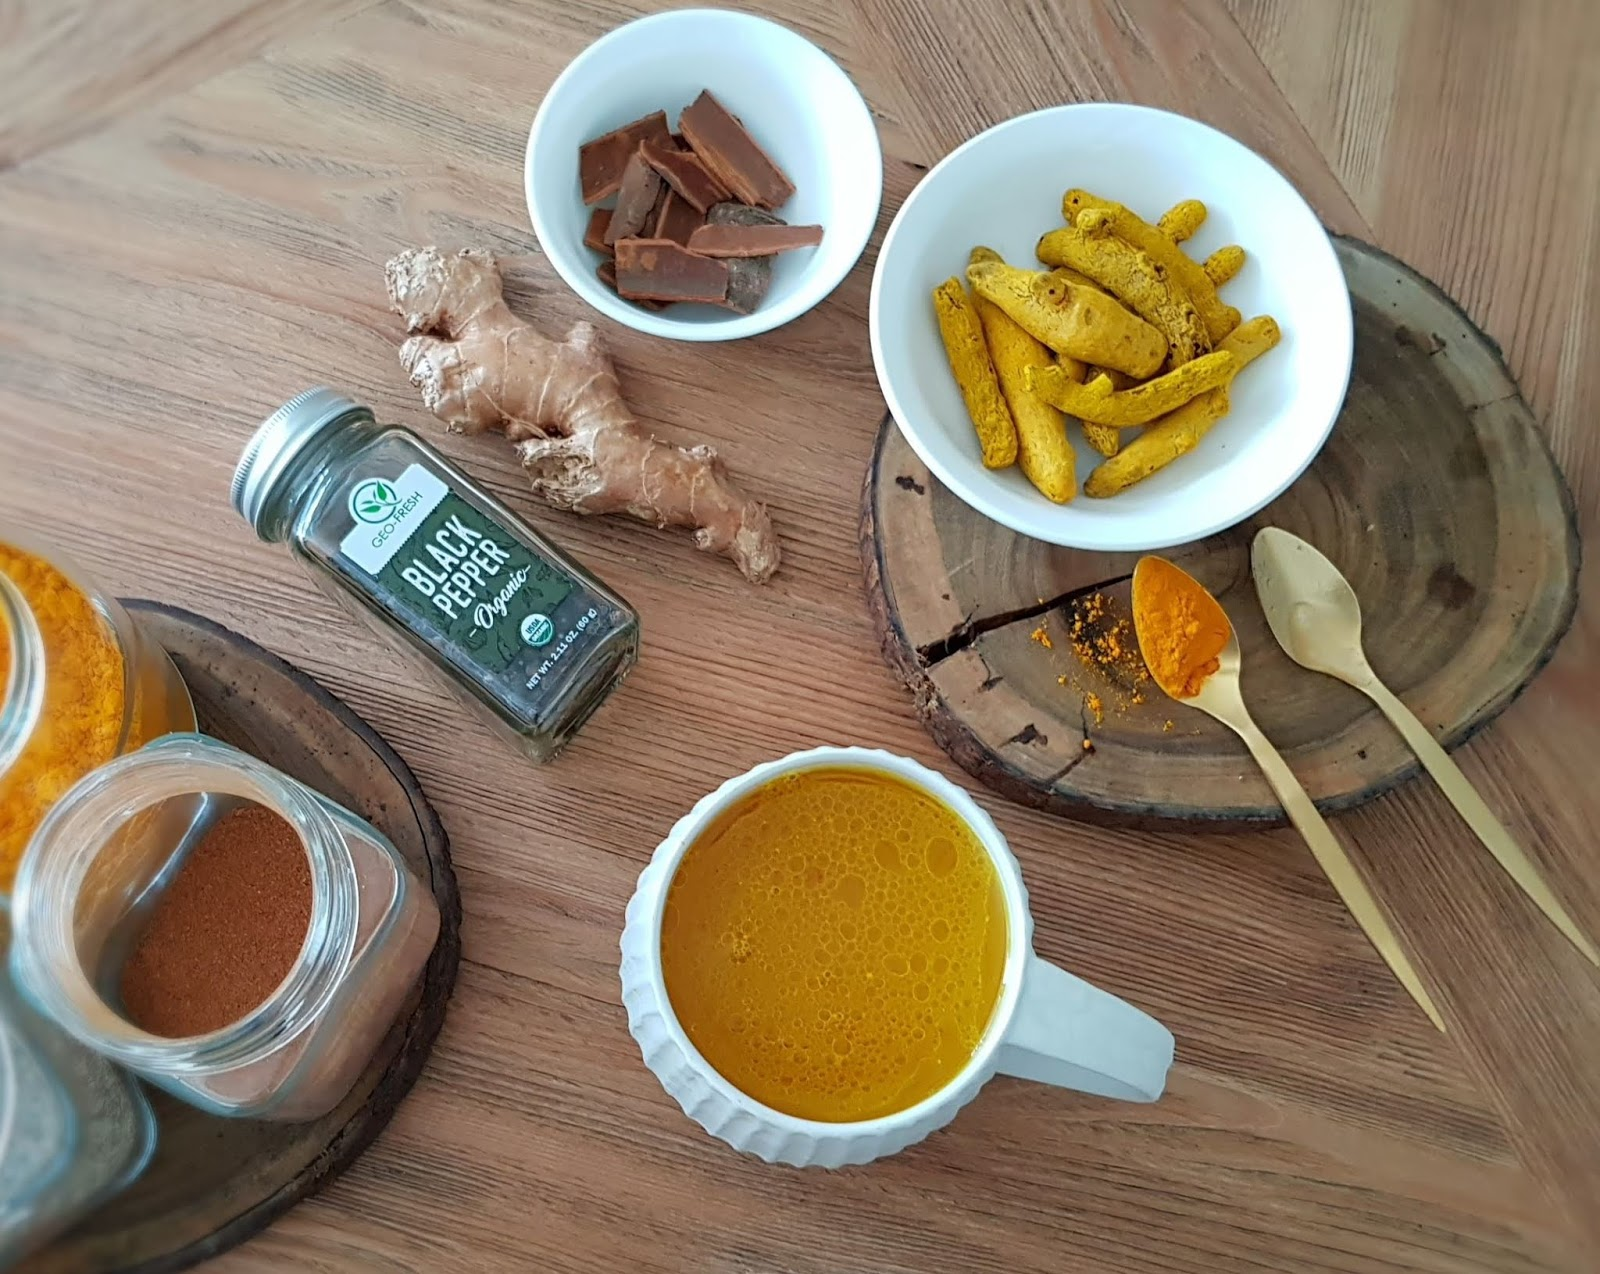 Immune Boosting Morning Turmeric Tea for Gut Health - Easy Immunity Boosting Recipe